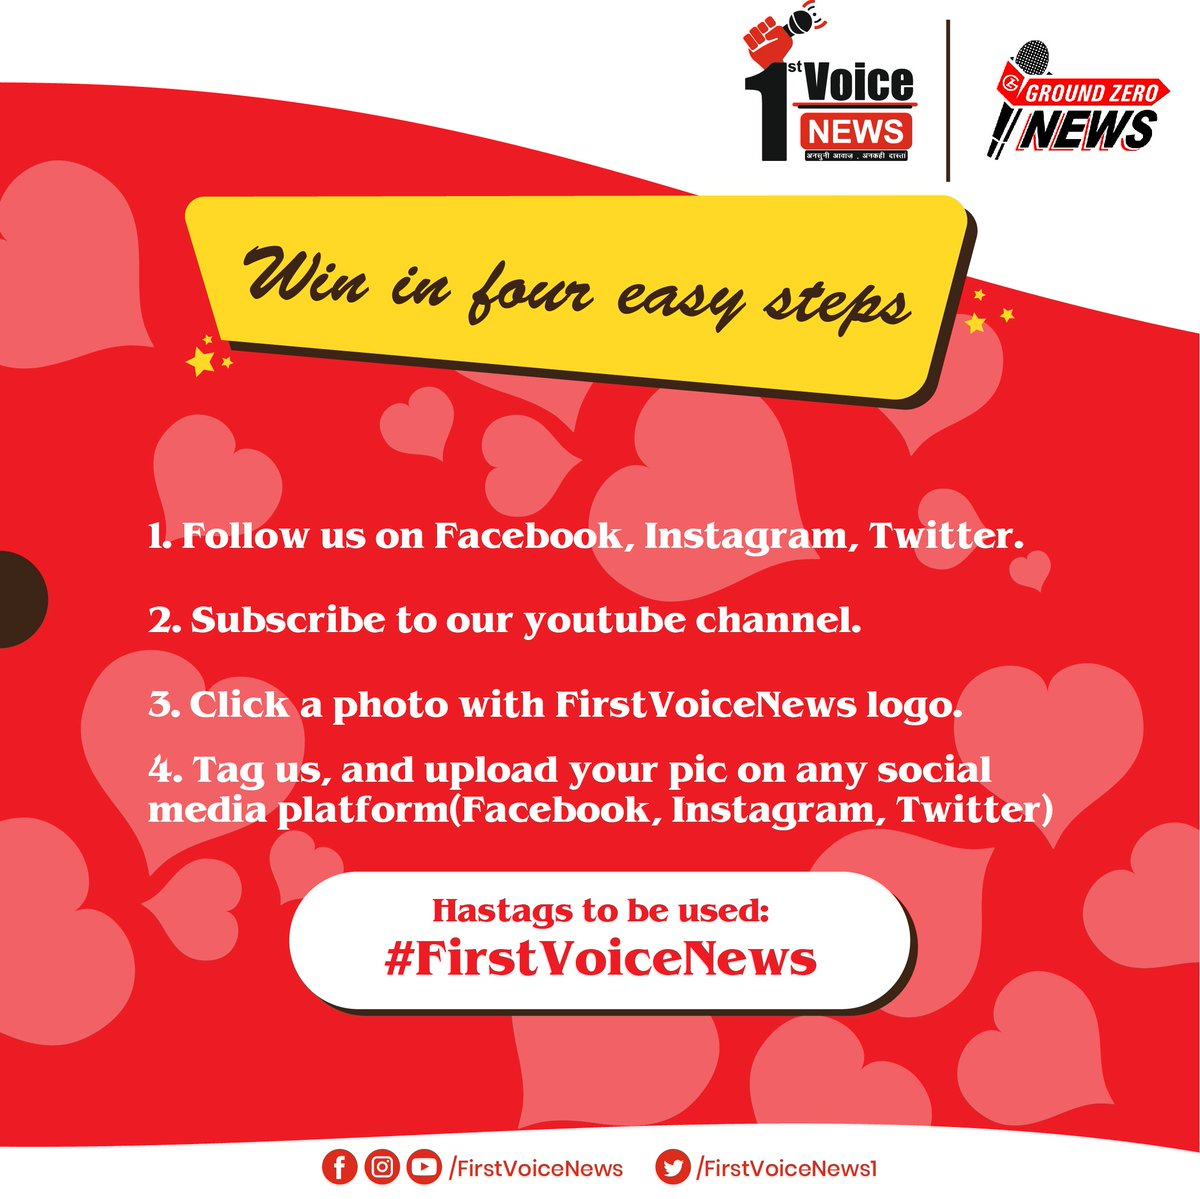 Love Valentine's Day? Then, you'll love this contest too! #Contest #FirstVoiceNews #ValentineDay #ValentinesWeek  Facebook:- https://t.co/YD85PeBXJ6 Instagram:- https://t.co/9N2RzDVQWb Twitter:- https://t.co/mGGLVYsiEI YouTube:- https://t.co/rcrJYPT1v1 https://t.co/Qz4IgqShmQ